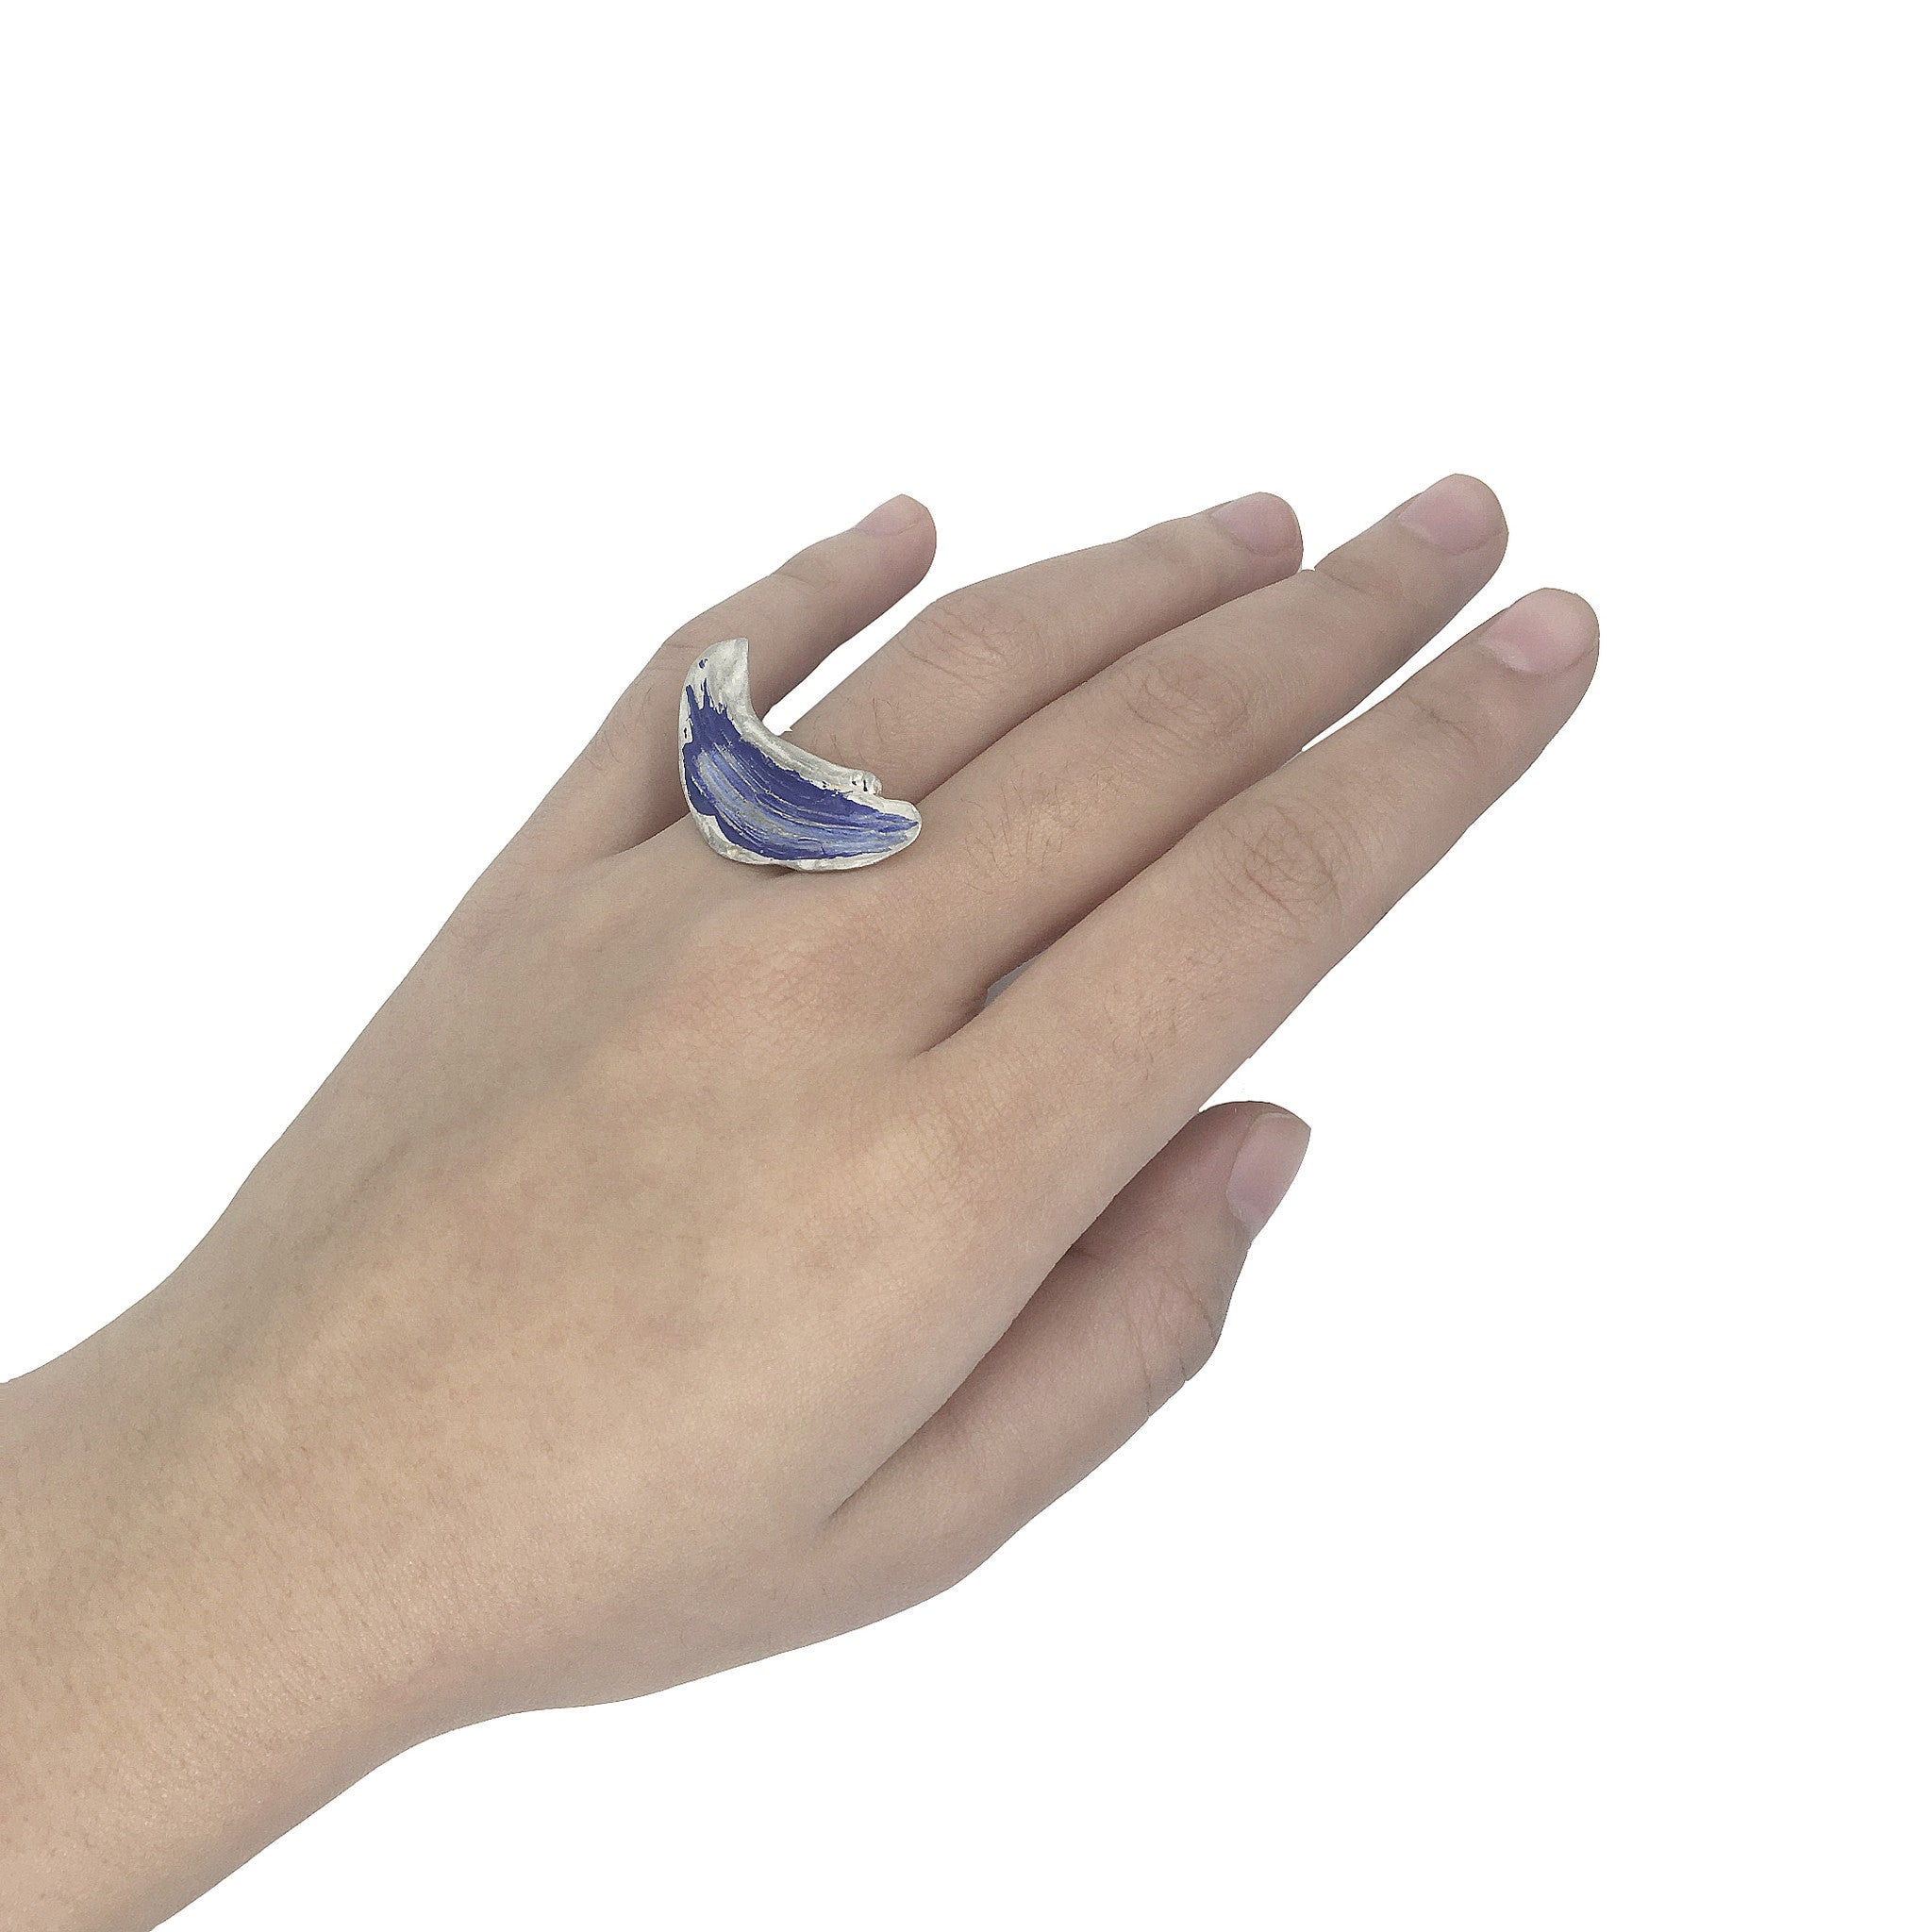 Blue Paint Swirl Ring by Lion Studio - Laboratory S